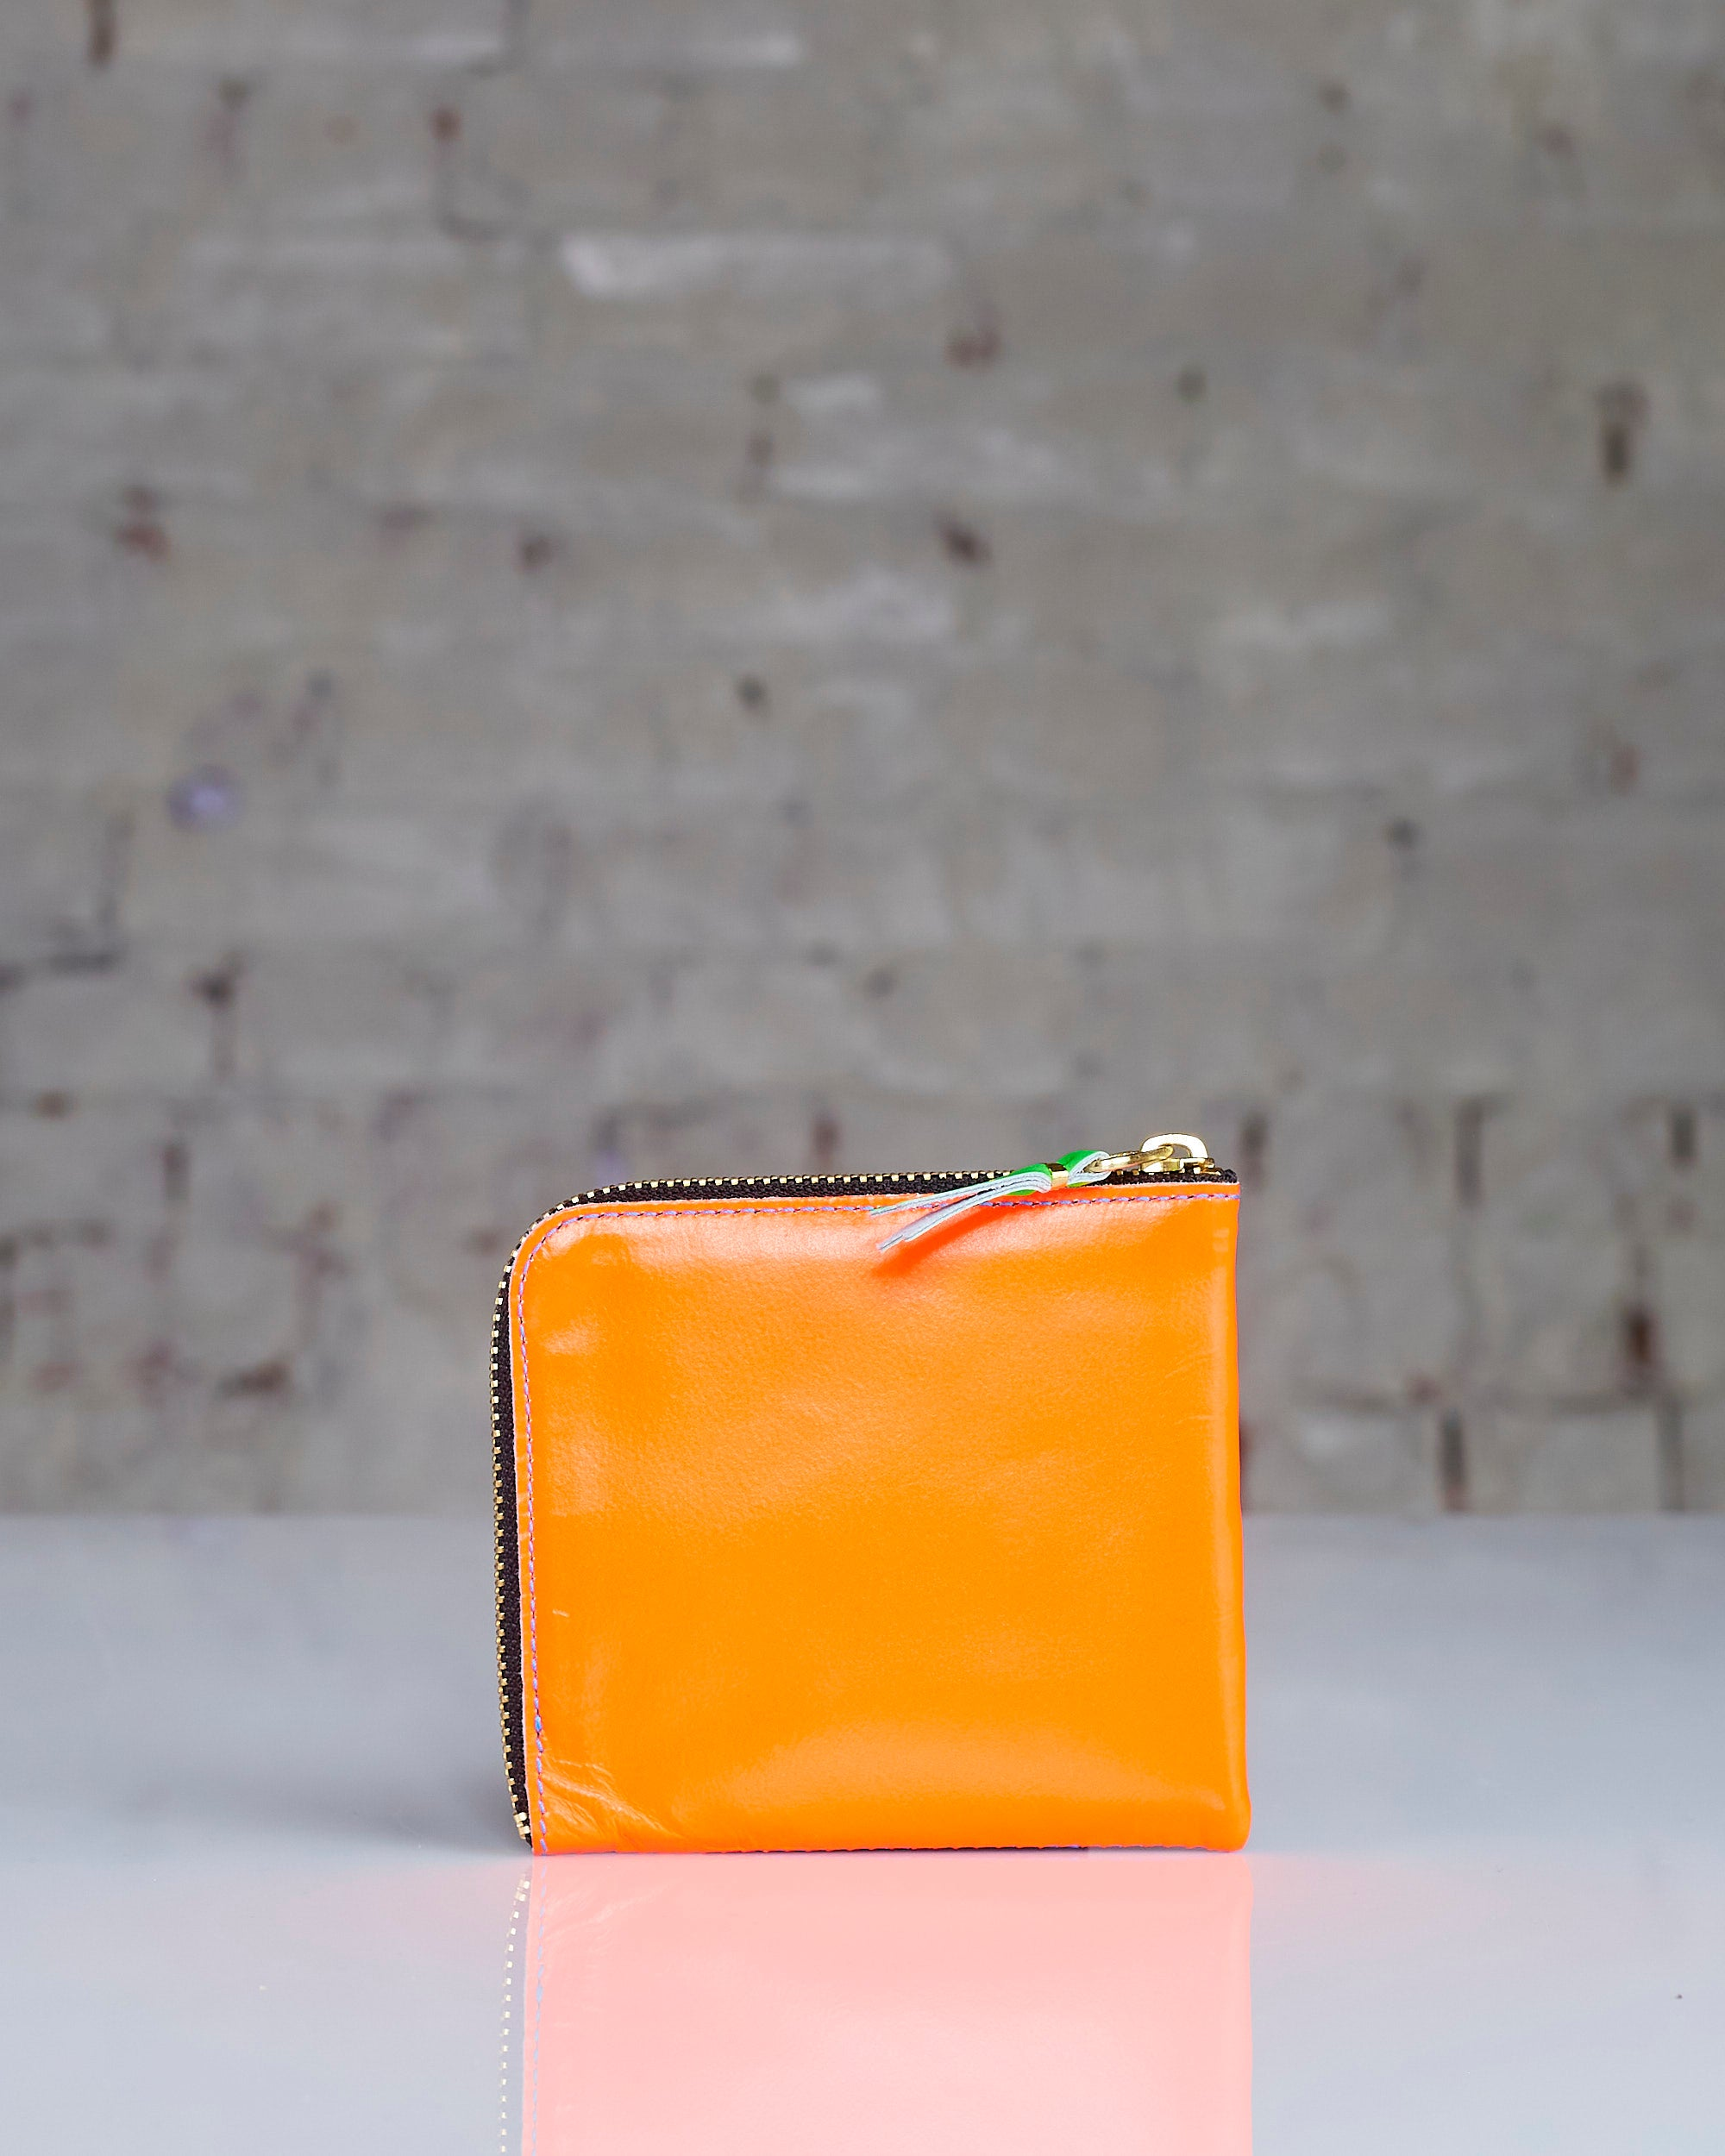 Comme des Garçons Wallet Super Fluo Leather Zip Wallet Orange